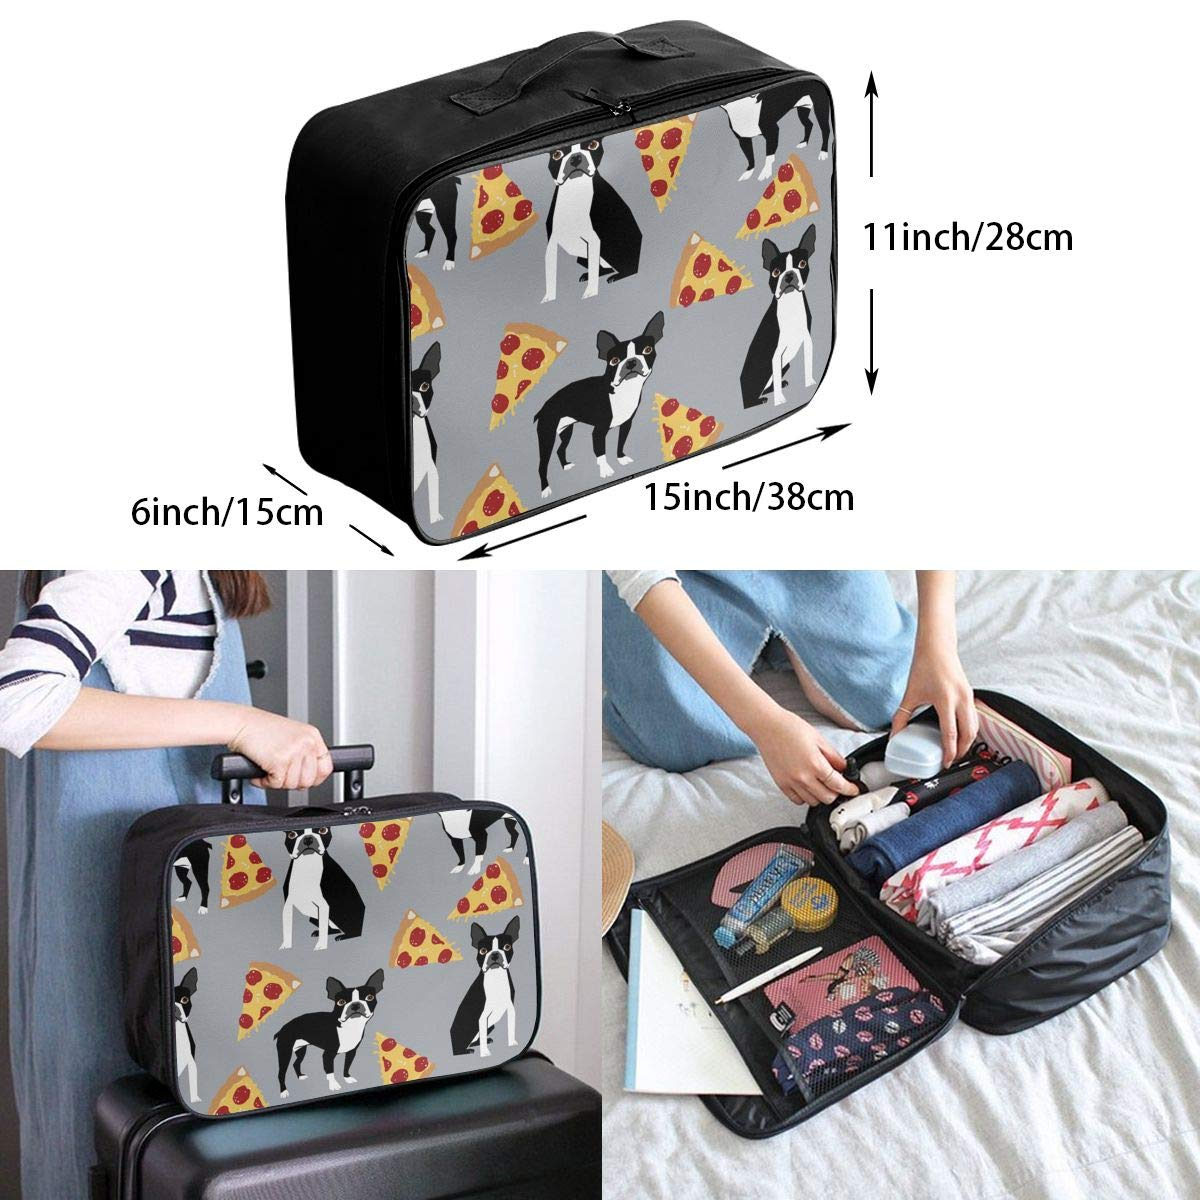 Lightweight Large Capacity Duffel Portable Luggage Bag Grey Boston Terrier Dog Pizza Travel Waterproof Foldable Storage Carry Tote Bag